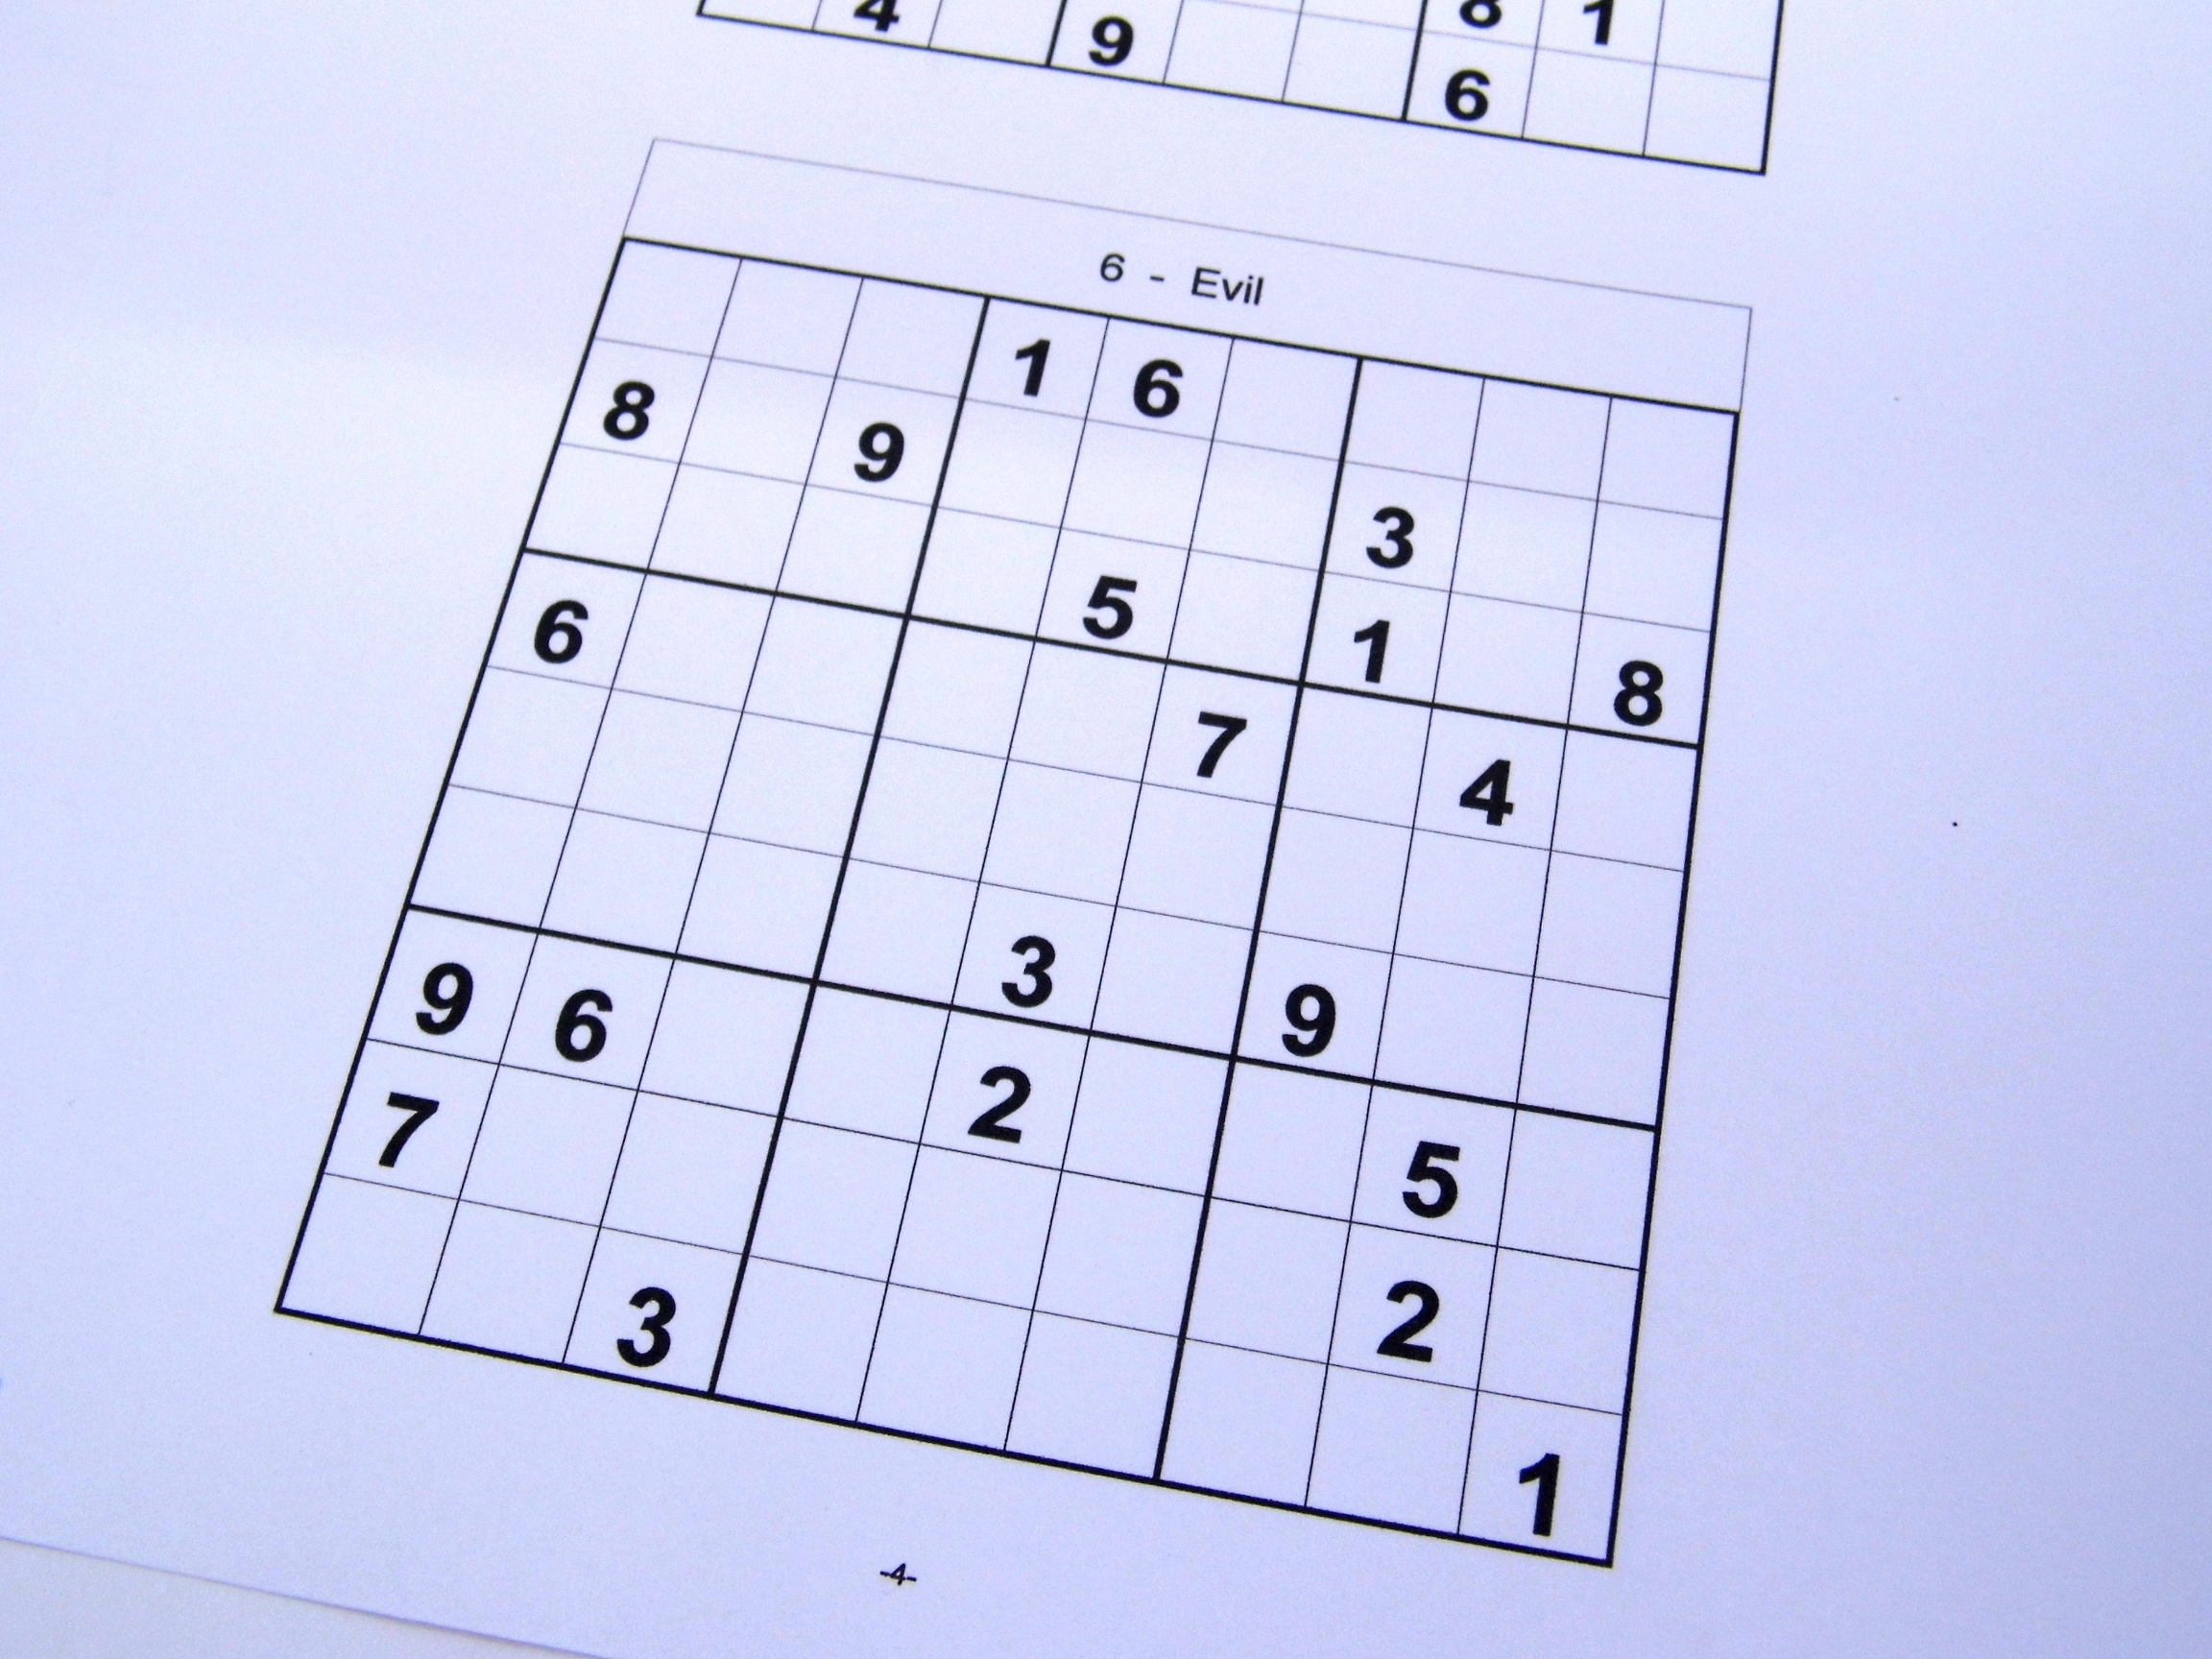 Free Sudoku Puzzles – Free Sudoku Puzzles From Easy To Evil Level - Download Printable Sudoku Puzzles Free